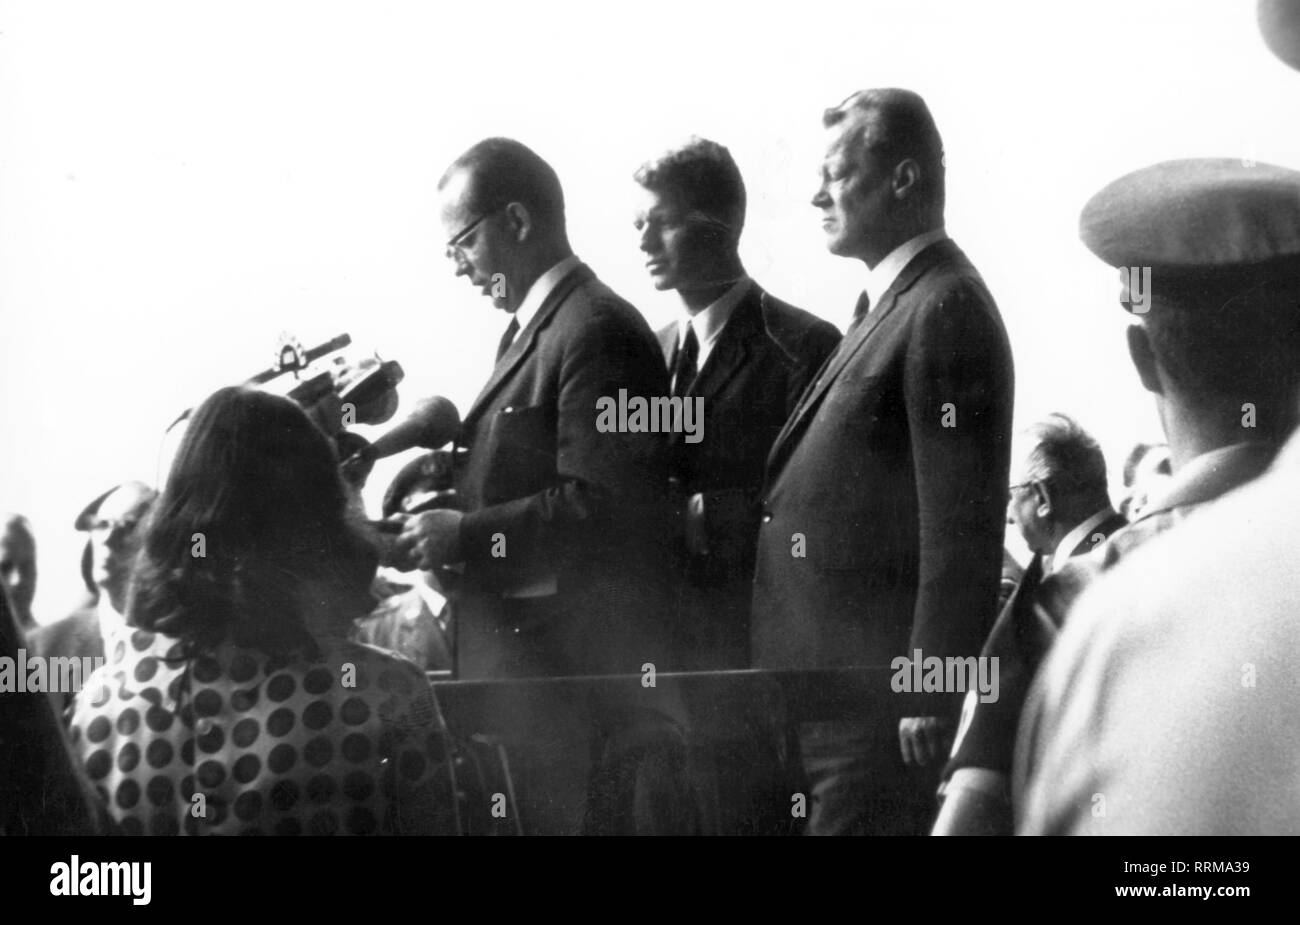 Kennedy, Robert Francis, 20.11.1925 - 6.6.1968, American politician (Democrats), American minister of justice 20.1.1961 - 3.9.1964, visit to West Berlin, with the governing mayor Willy Brandt, an interpreter translates his speech, airport Tempelhof, 22.2.1962, Additional-Rights-Clearance-Info-Not-Available - Stock Image